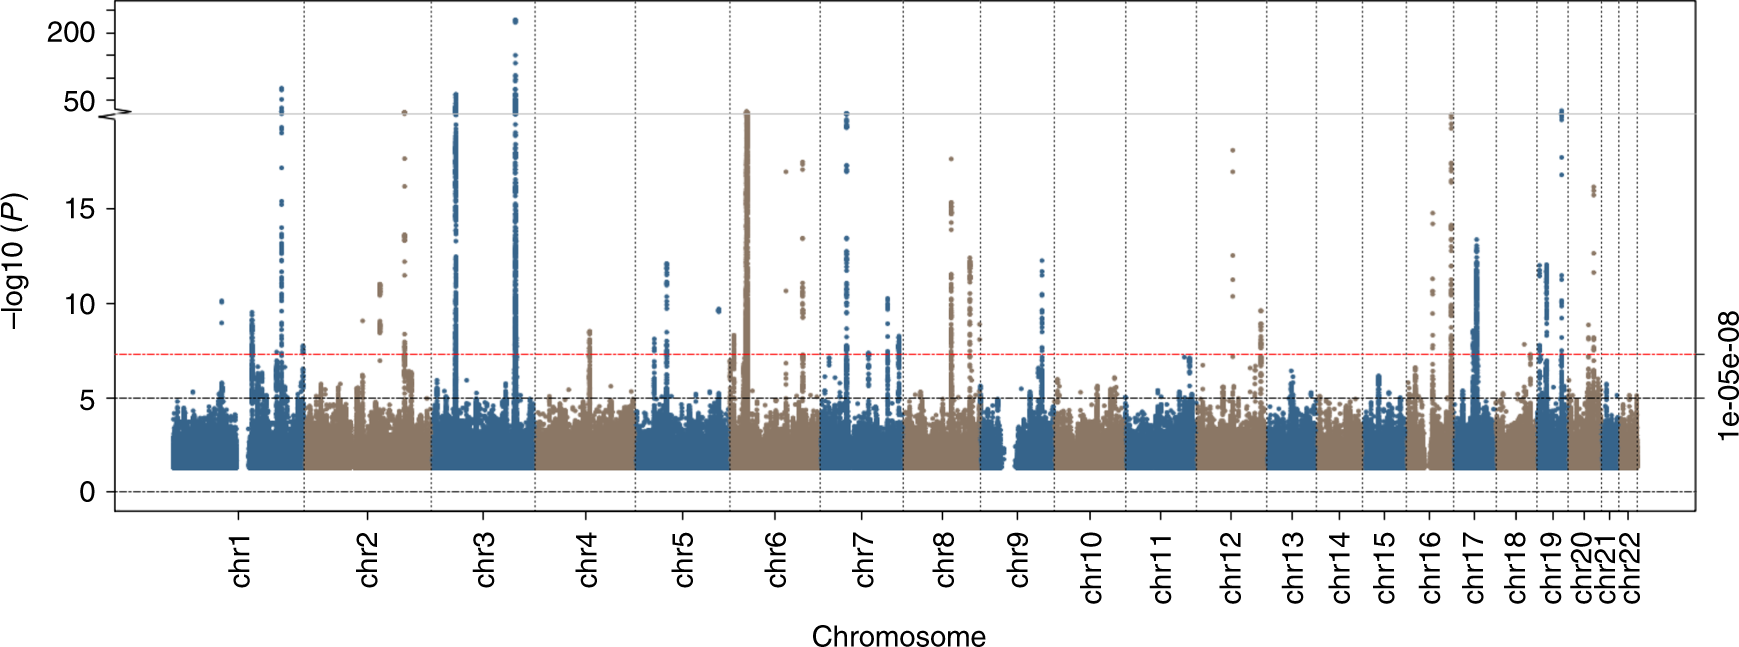 genome wide analysis for mouth ulcers identifies associations at immune  regulatory loci | nature communications